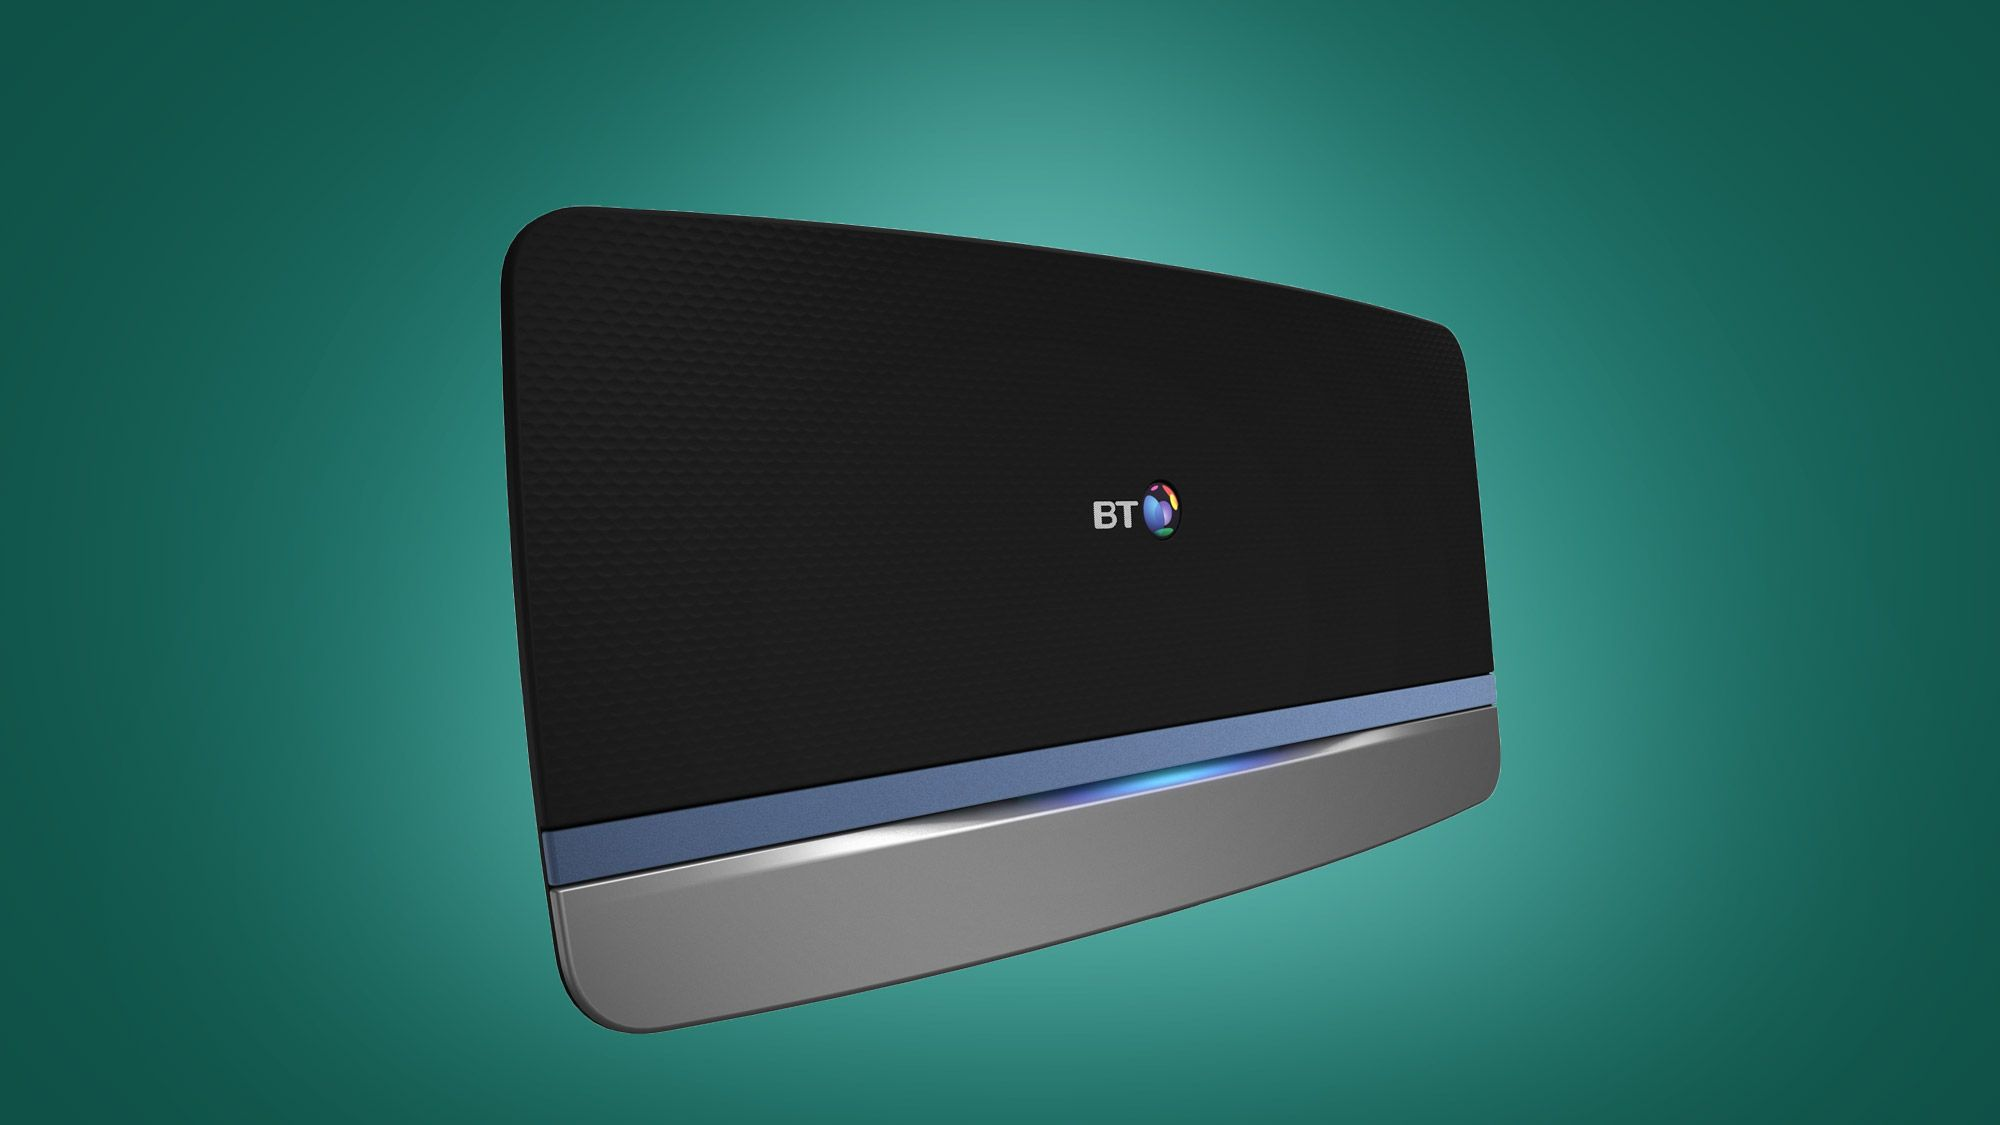 The Best Bt Broadband Deals In March 2020 With Images